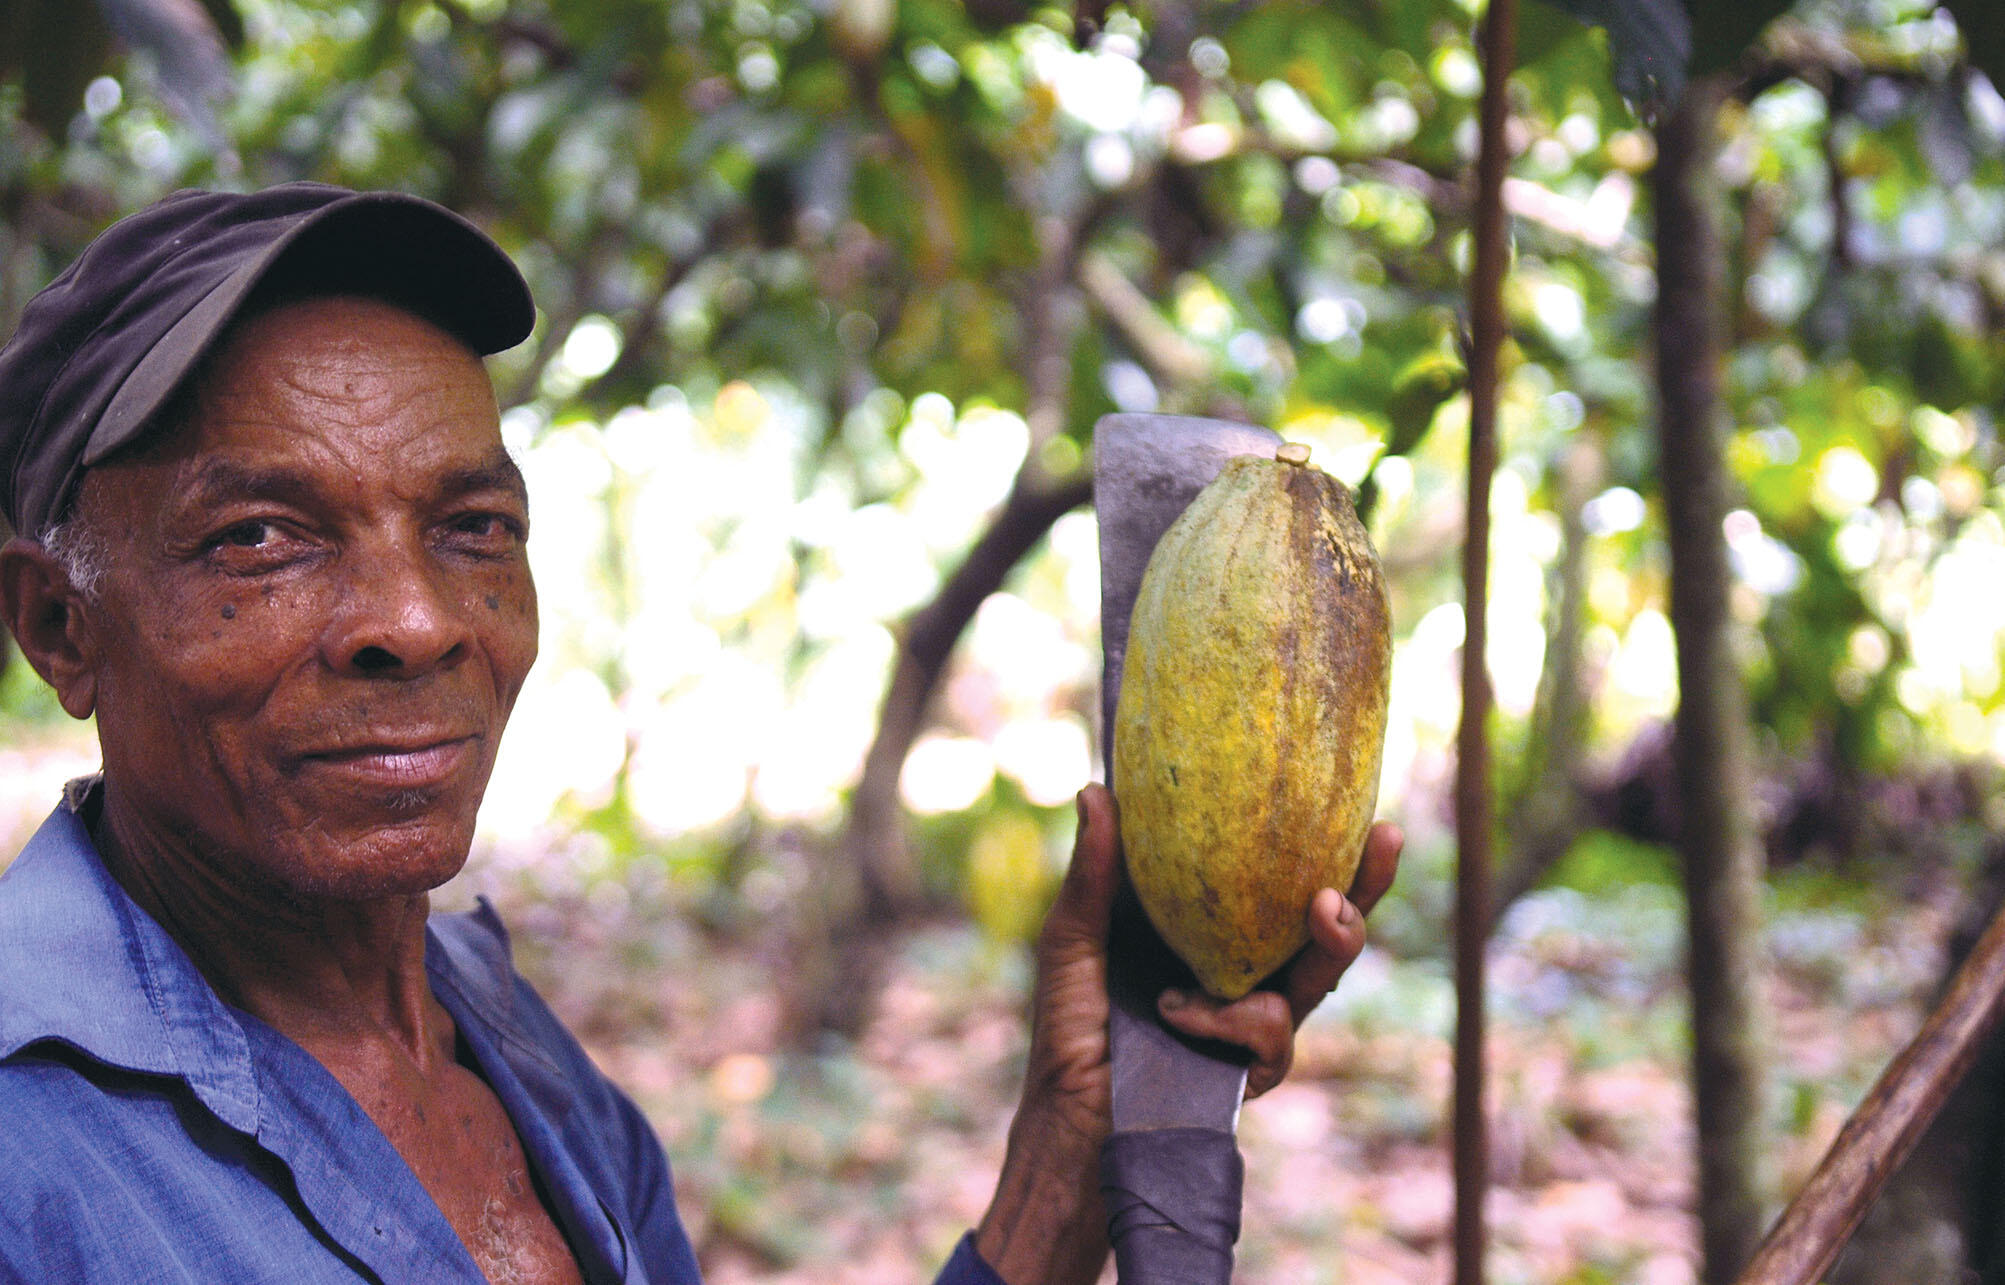 A farmer shows the inside detail of a cacao pod. (Photo by Everjean.)